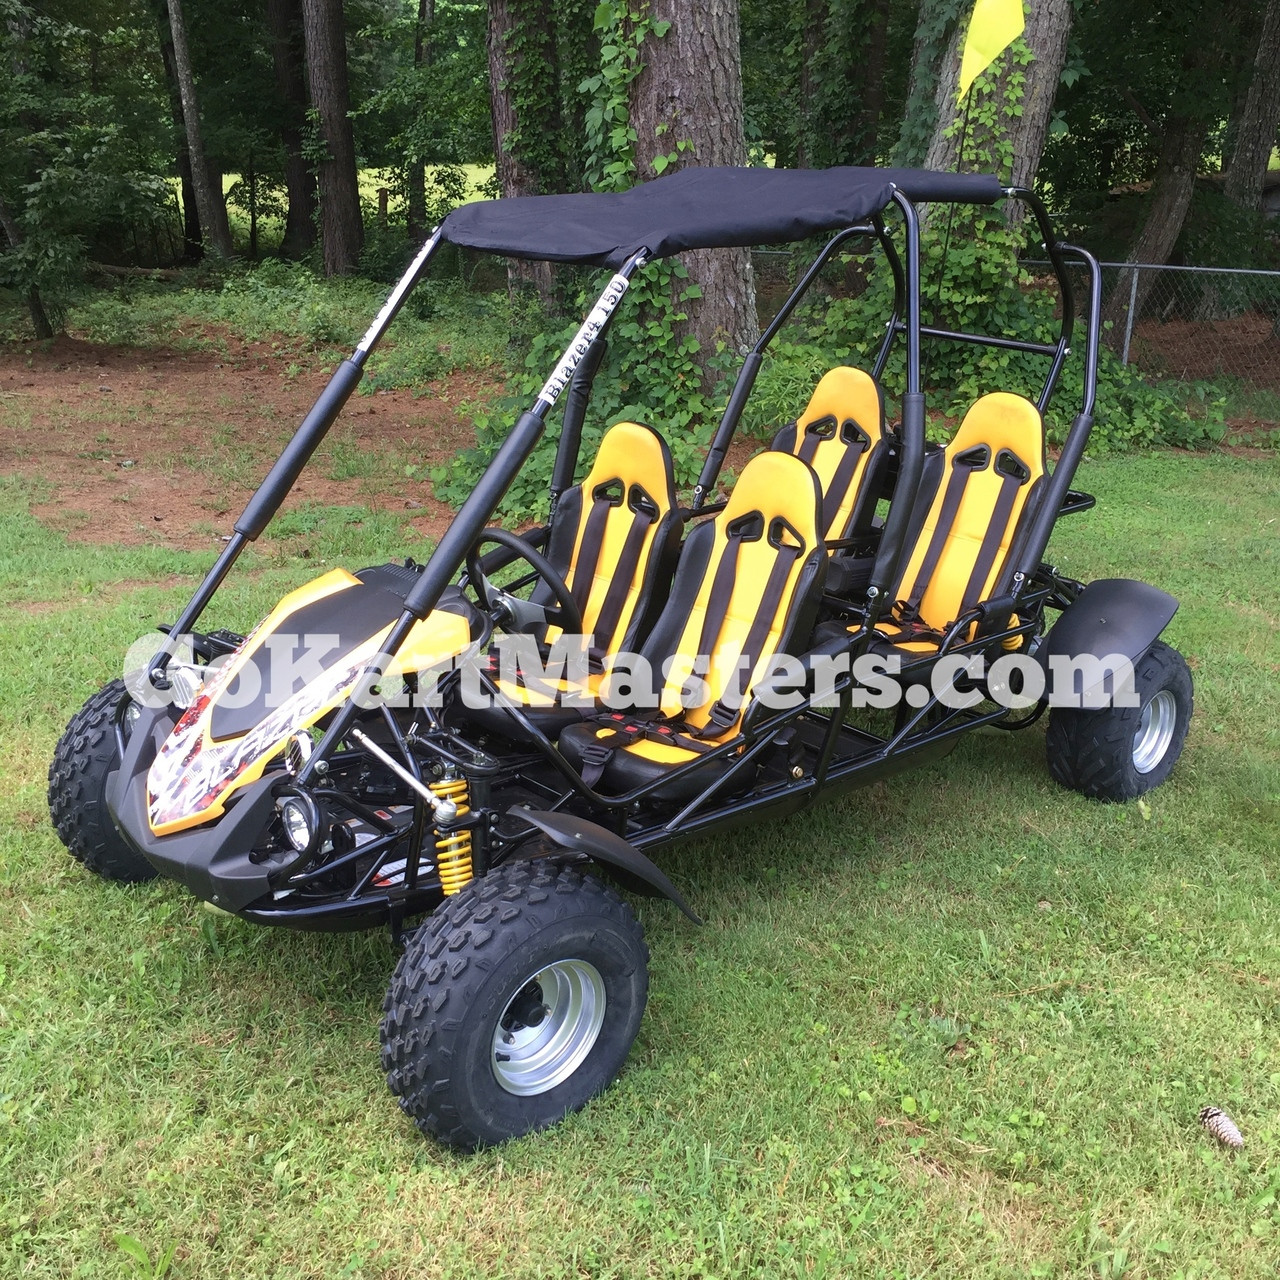 TrailMaster Blazer4 150 Go Kart - Yellow